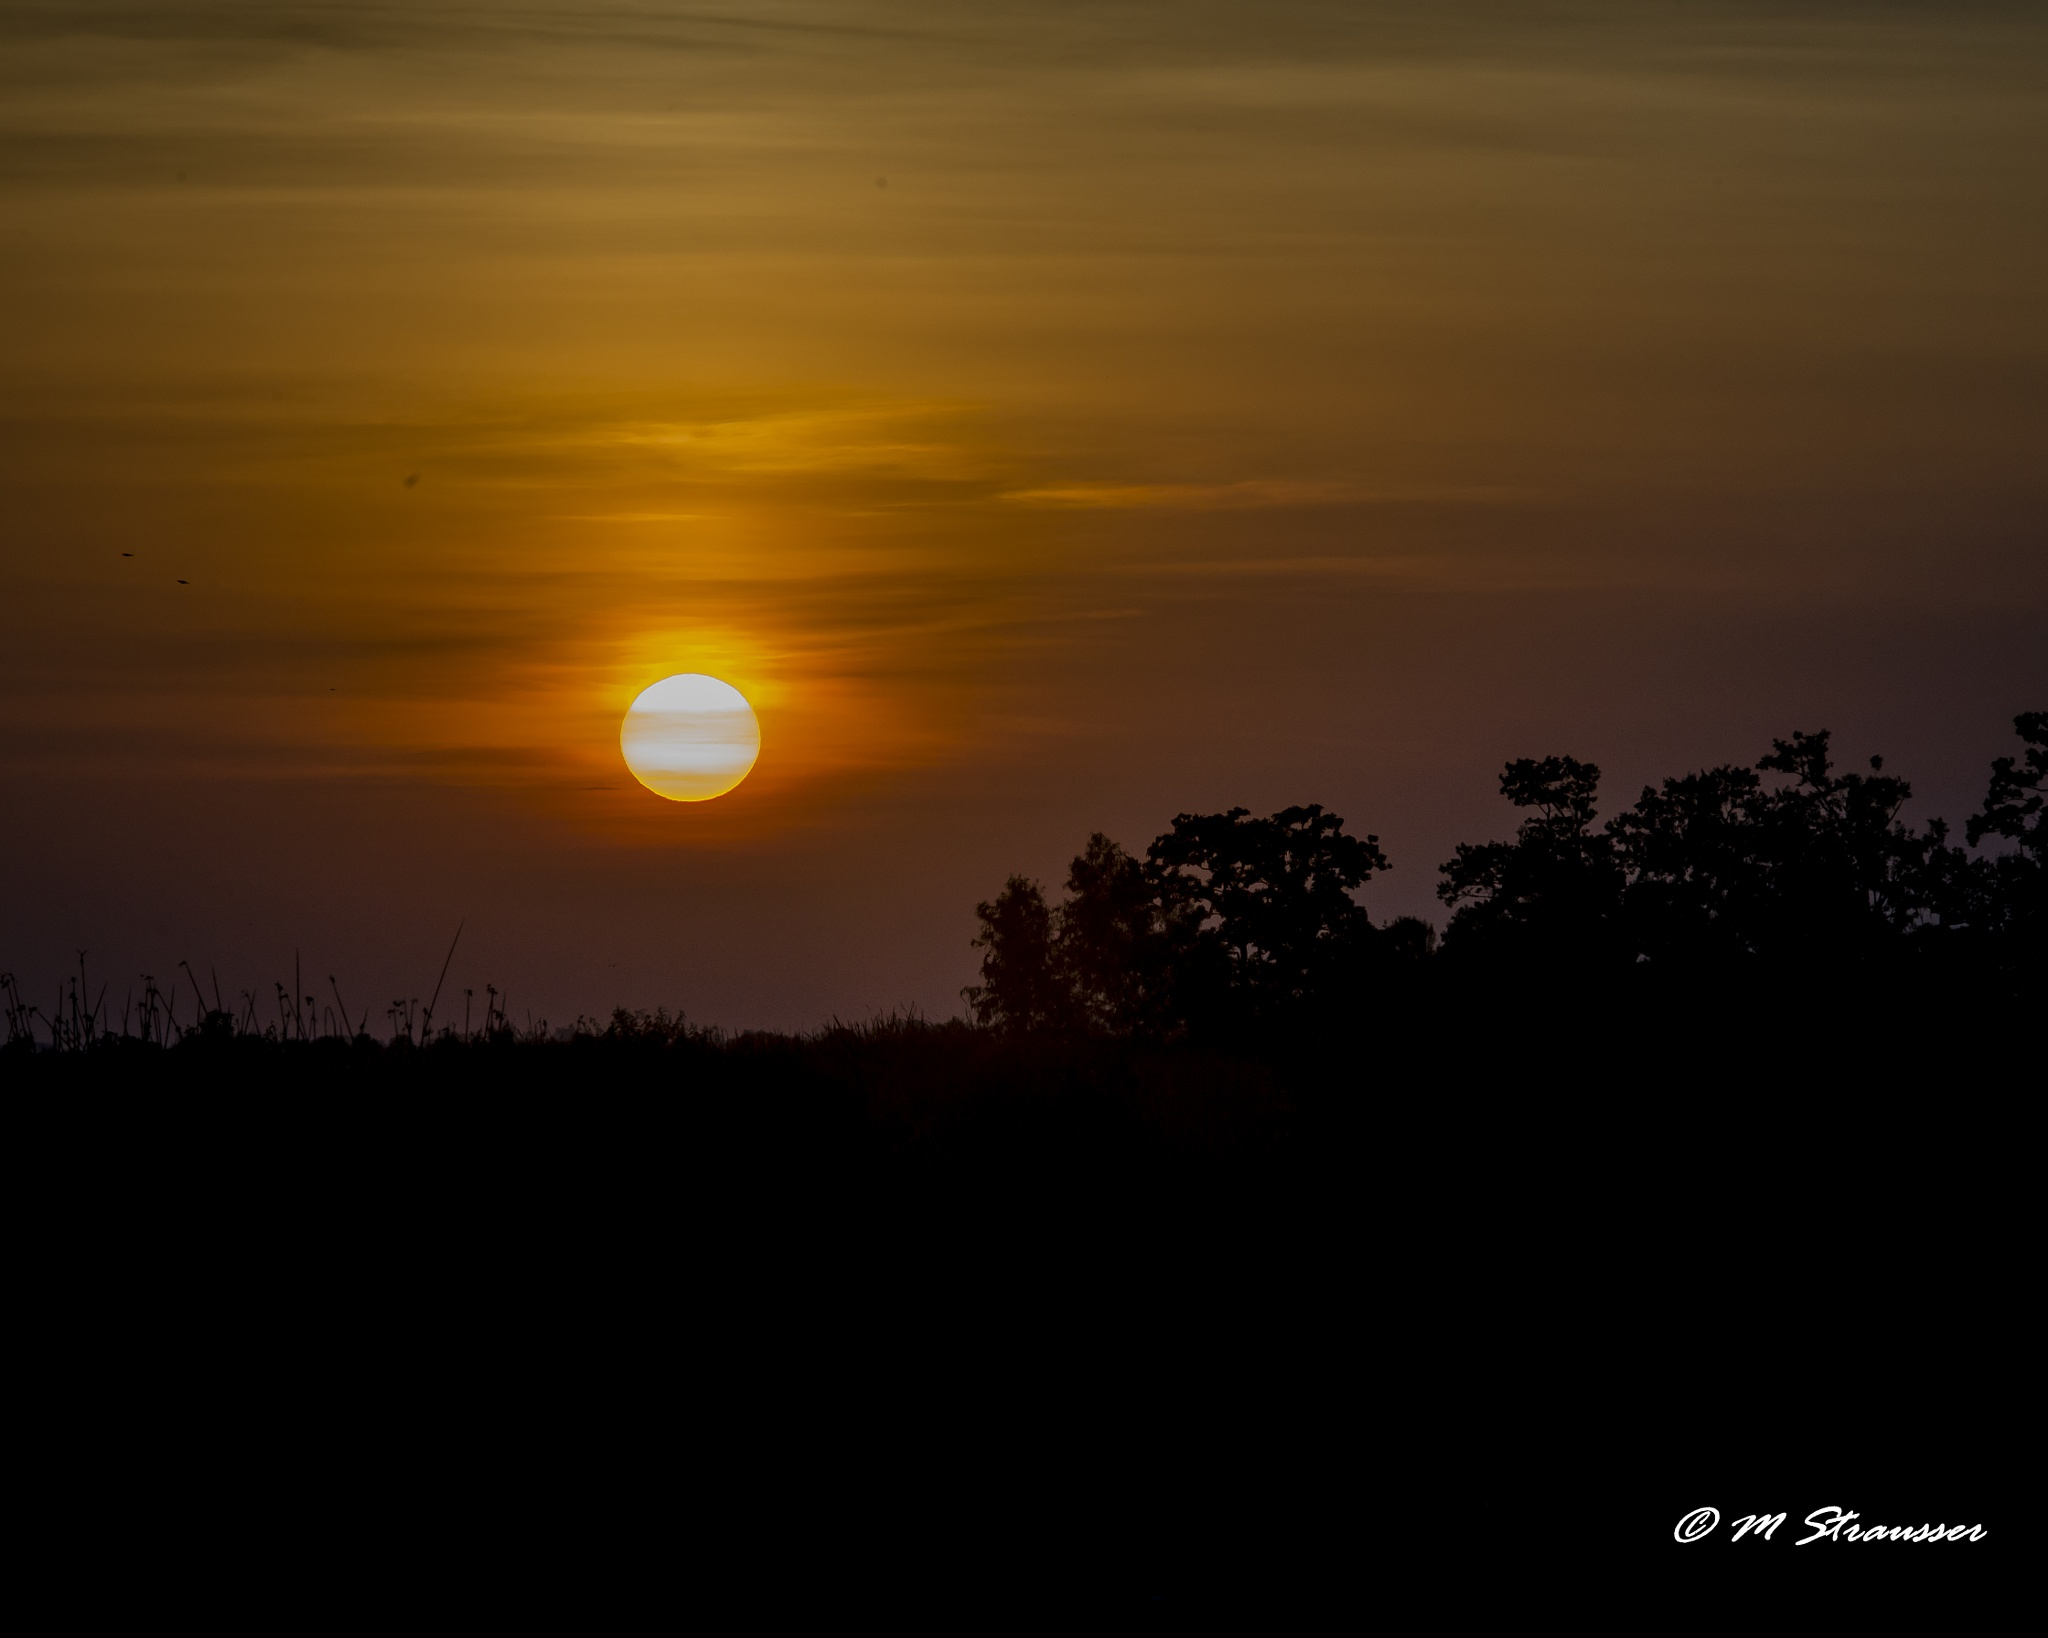 sunrise in the marsh by MStrausser of the iMage Shack